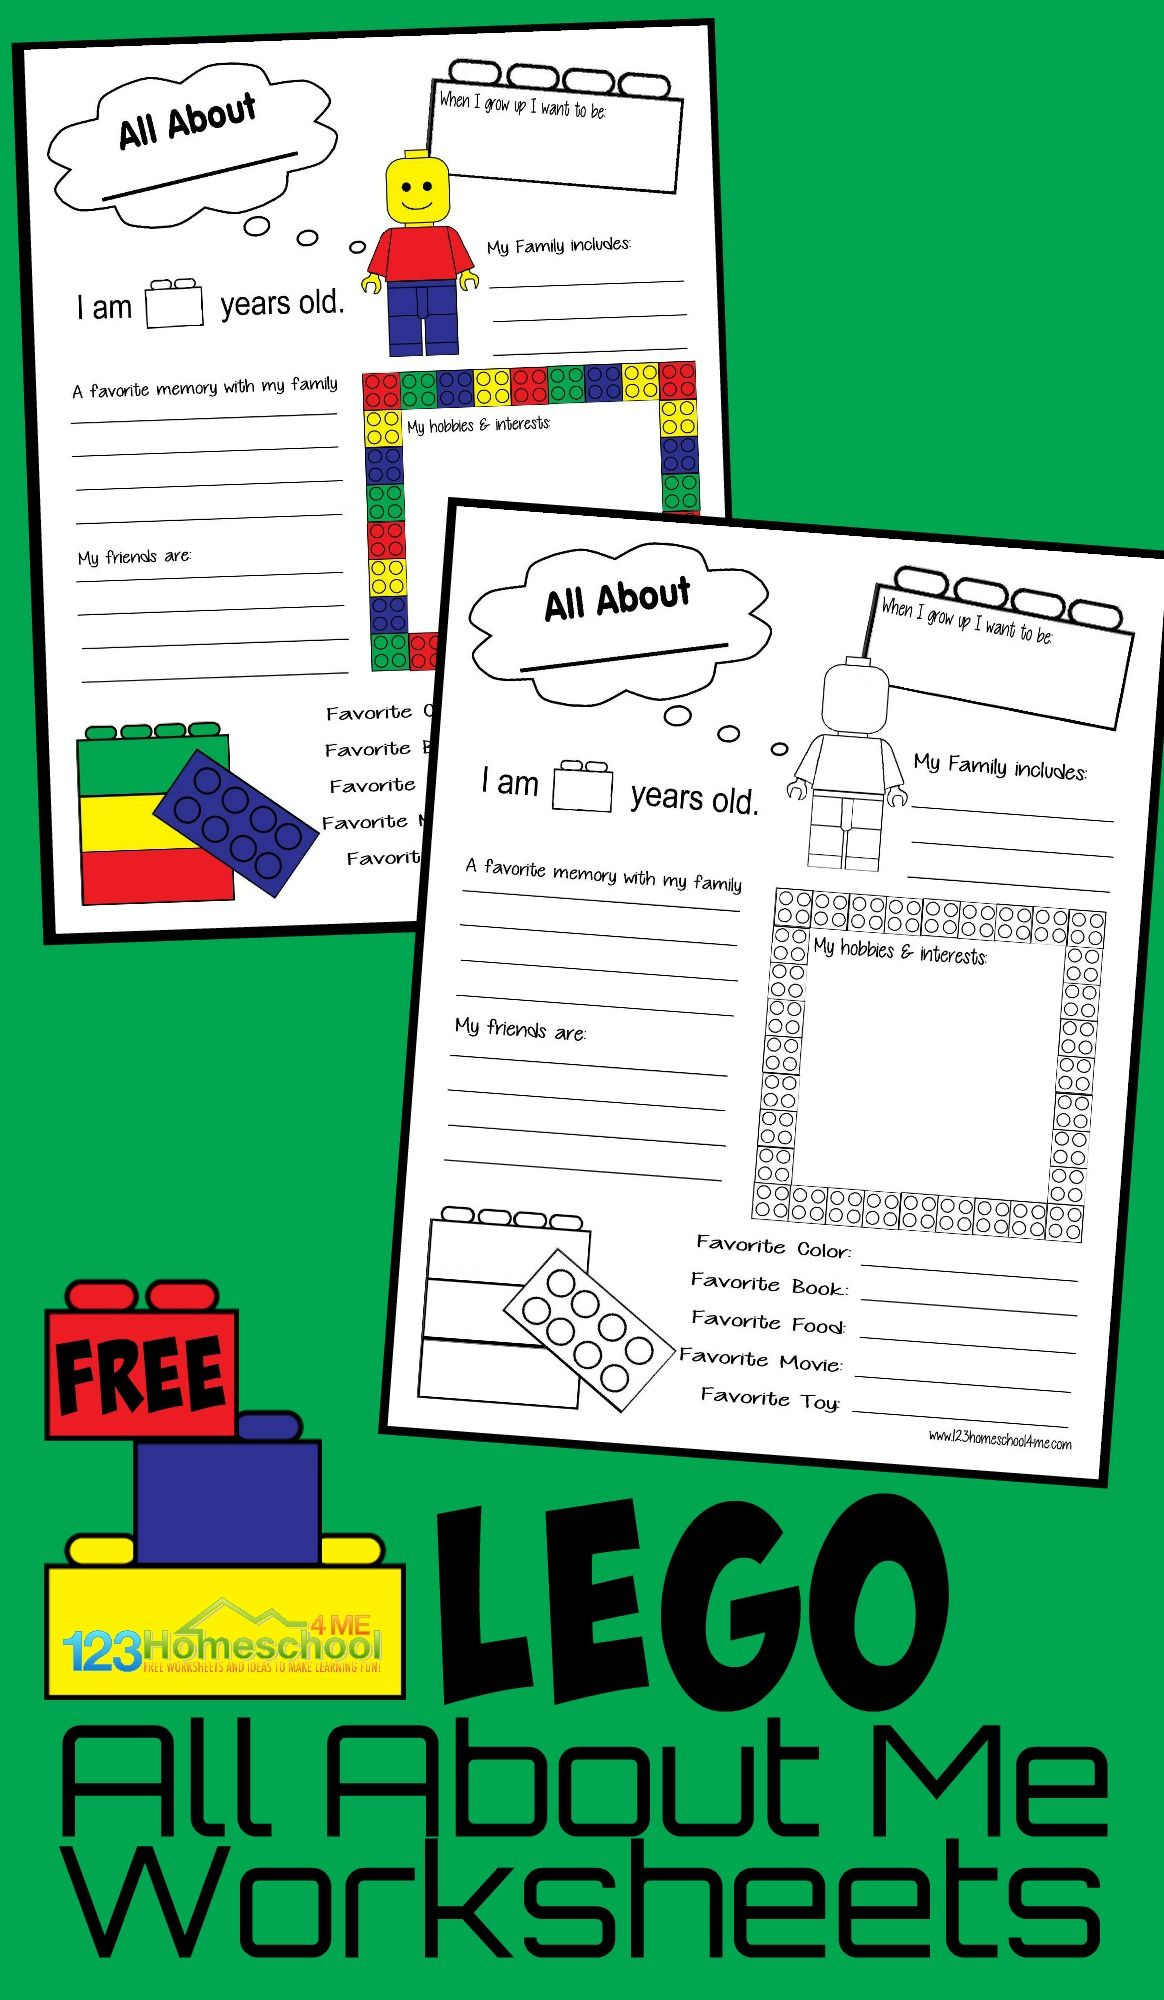 hight resolution of Lego All About Me Printable   All about me worksheet